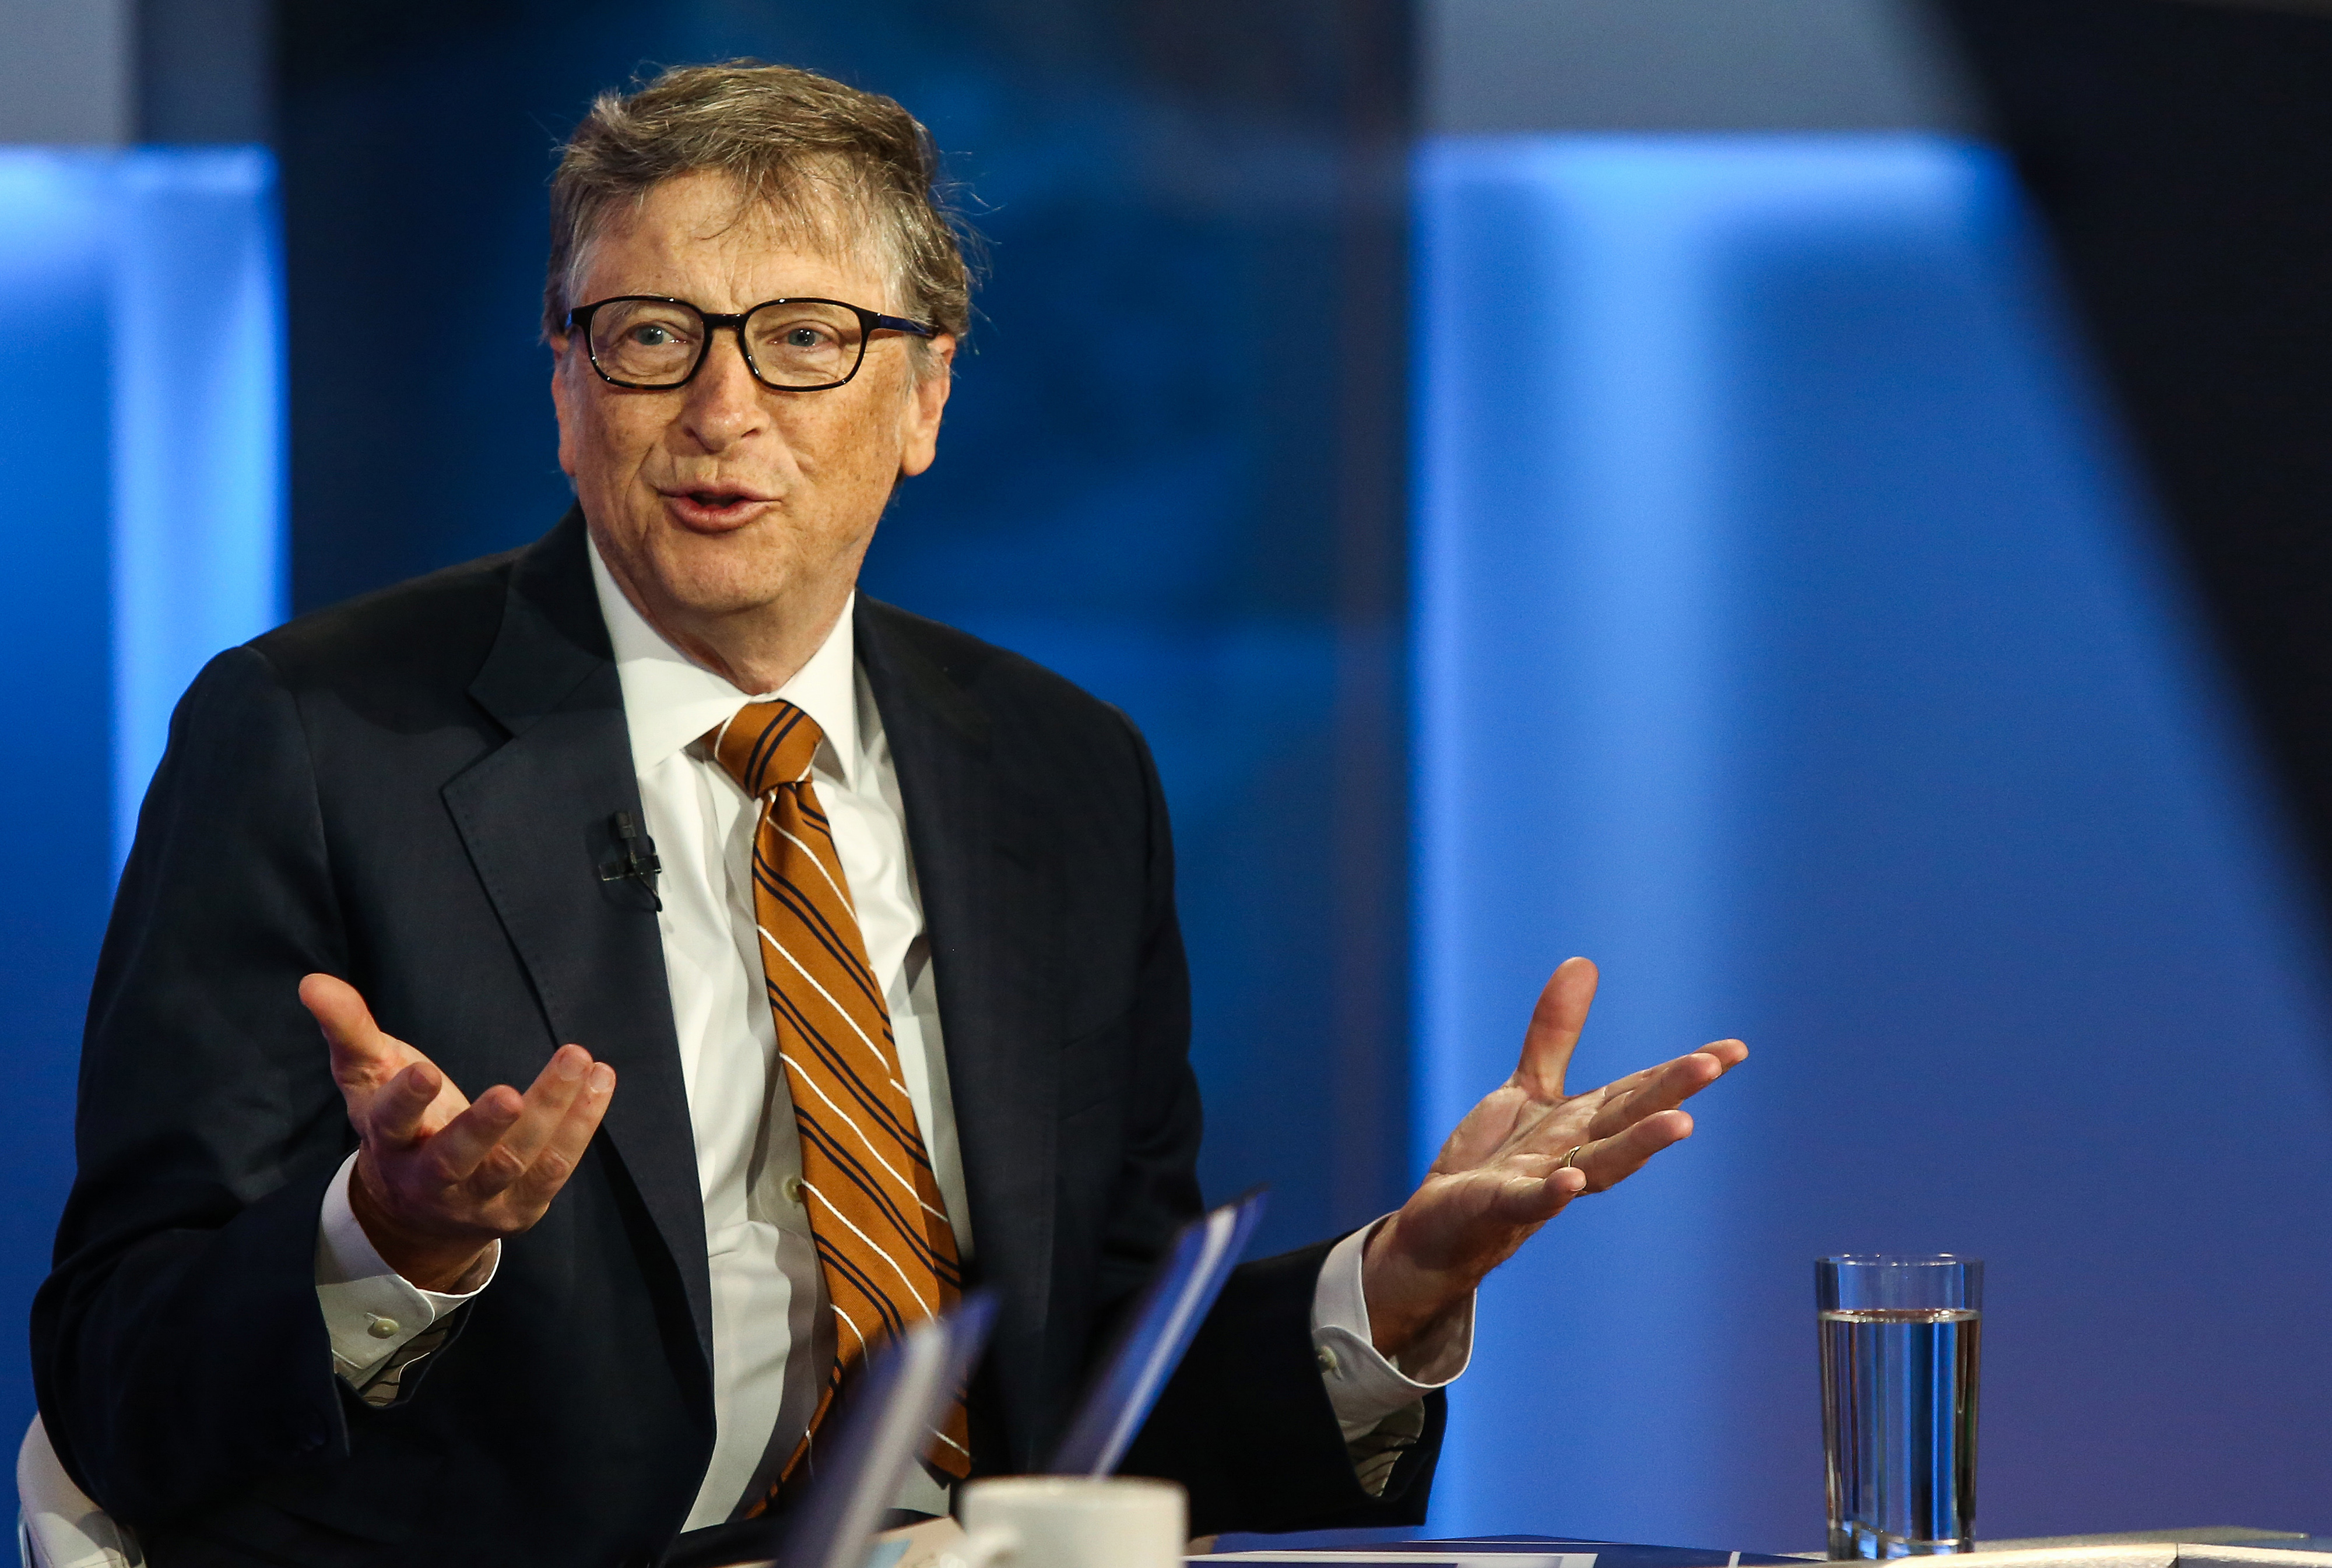 Bill Gates speaks during a Bloomberg Television interview in New York on Feb. 23, 2016.